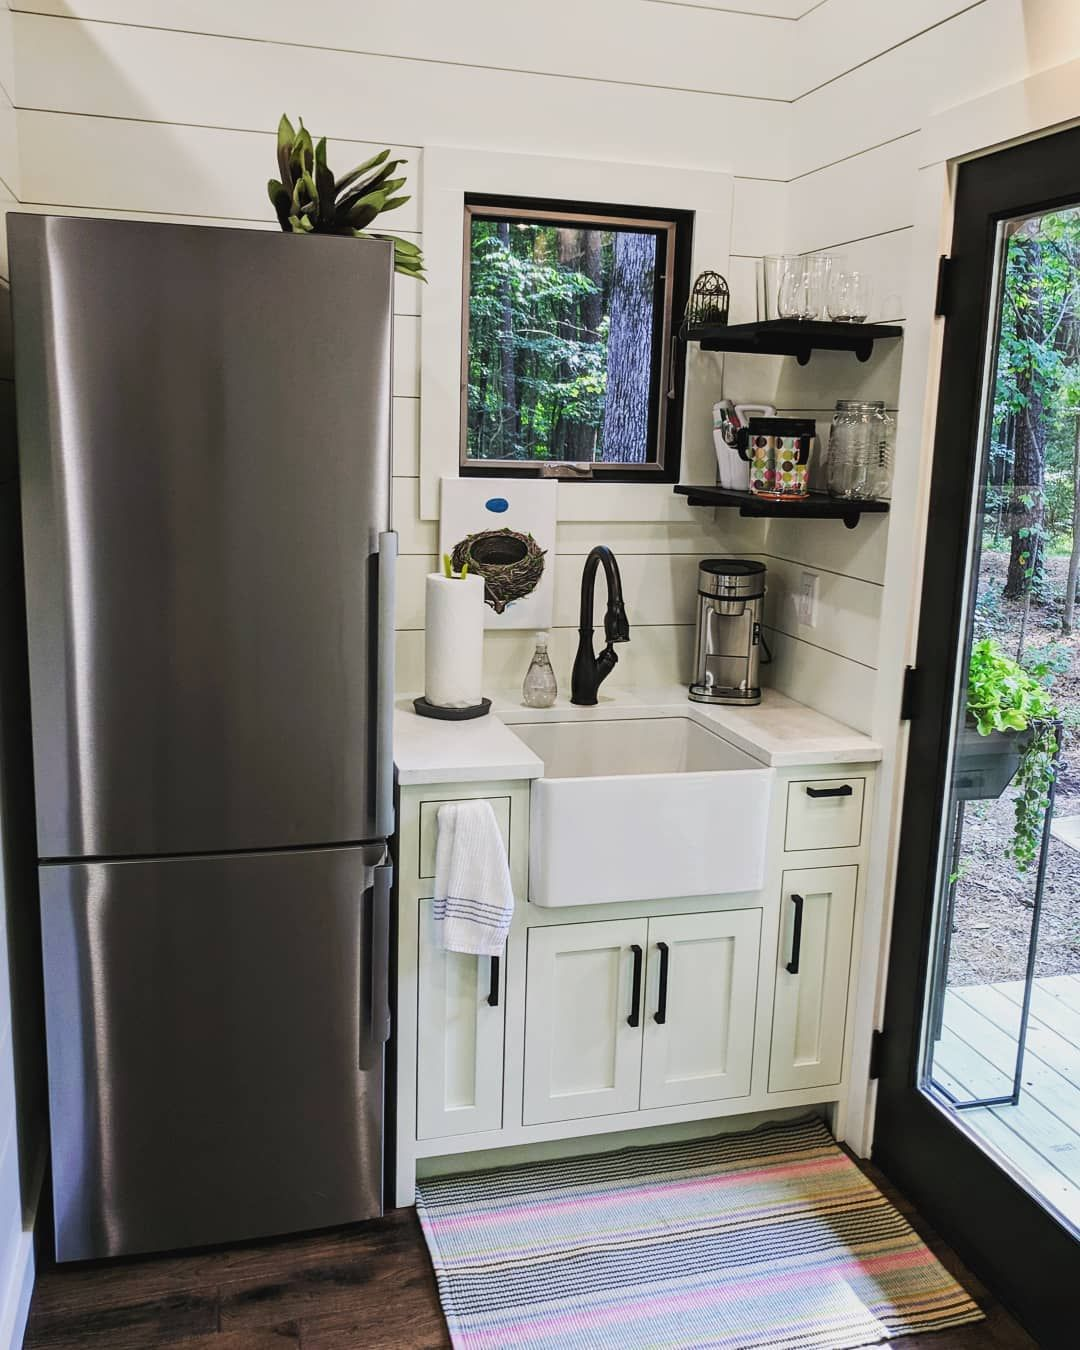 Timbercraft Tiny Homes On Instagram Even A Tiny Kitchen Can Have A Farm Sink Timbercrafted Tiny House Appliances Timbercraft Tiny Homes Tiny House Kitchen